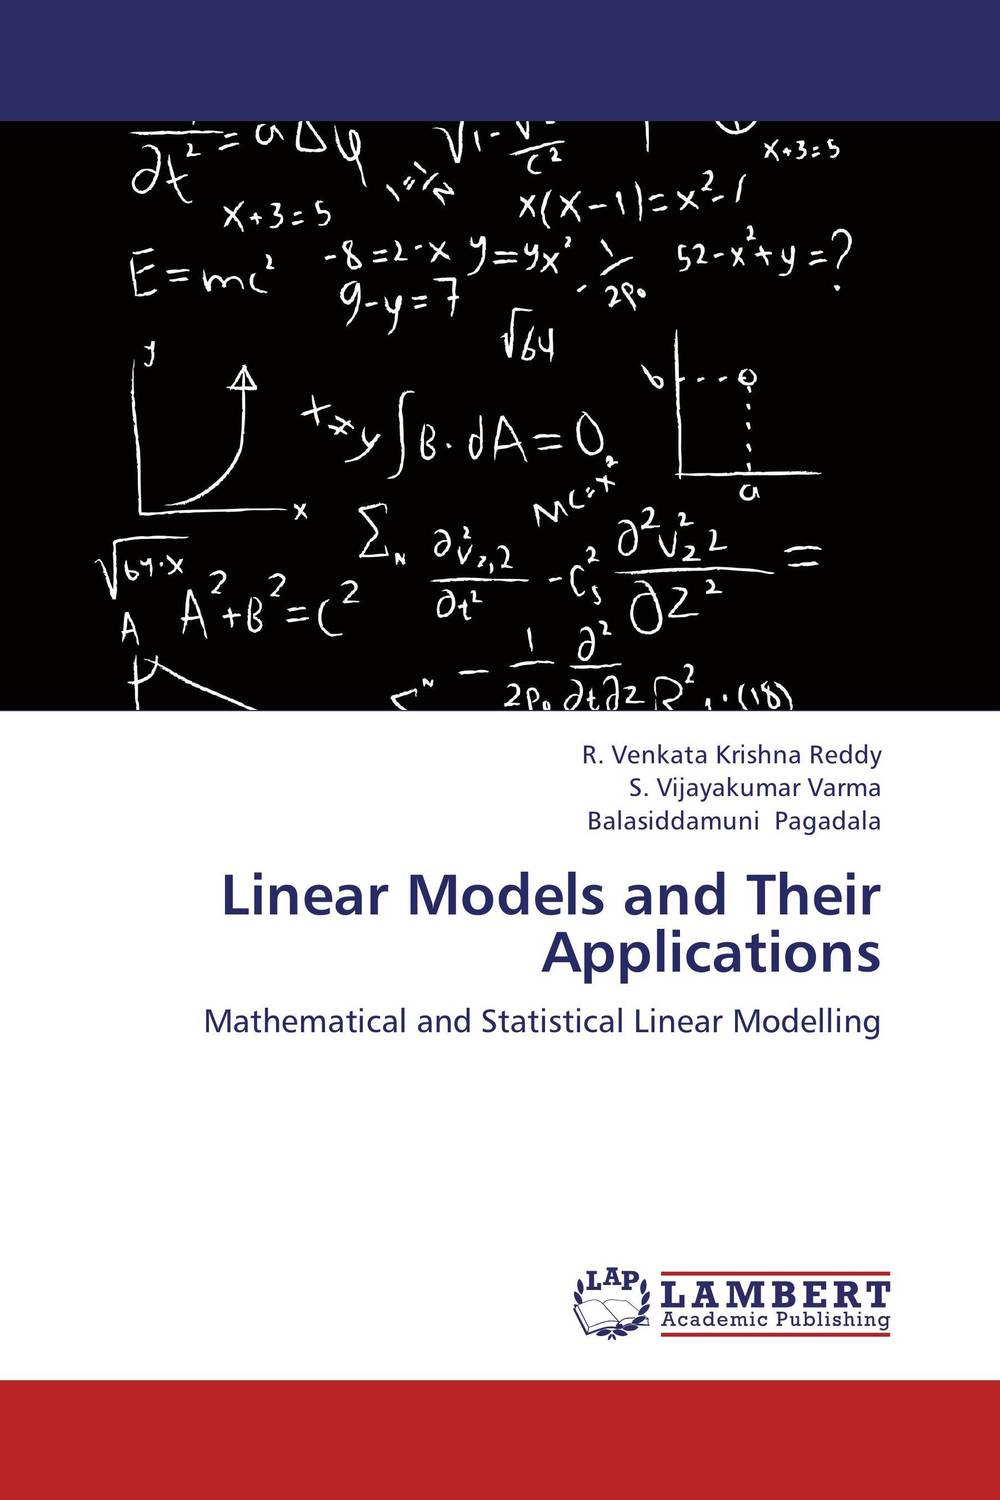 Linear Models and Their Applications o k belwal measures of information and their applications to various disciplines